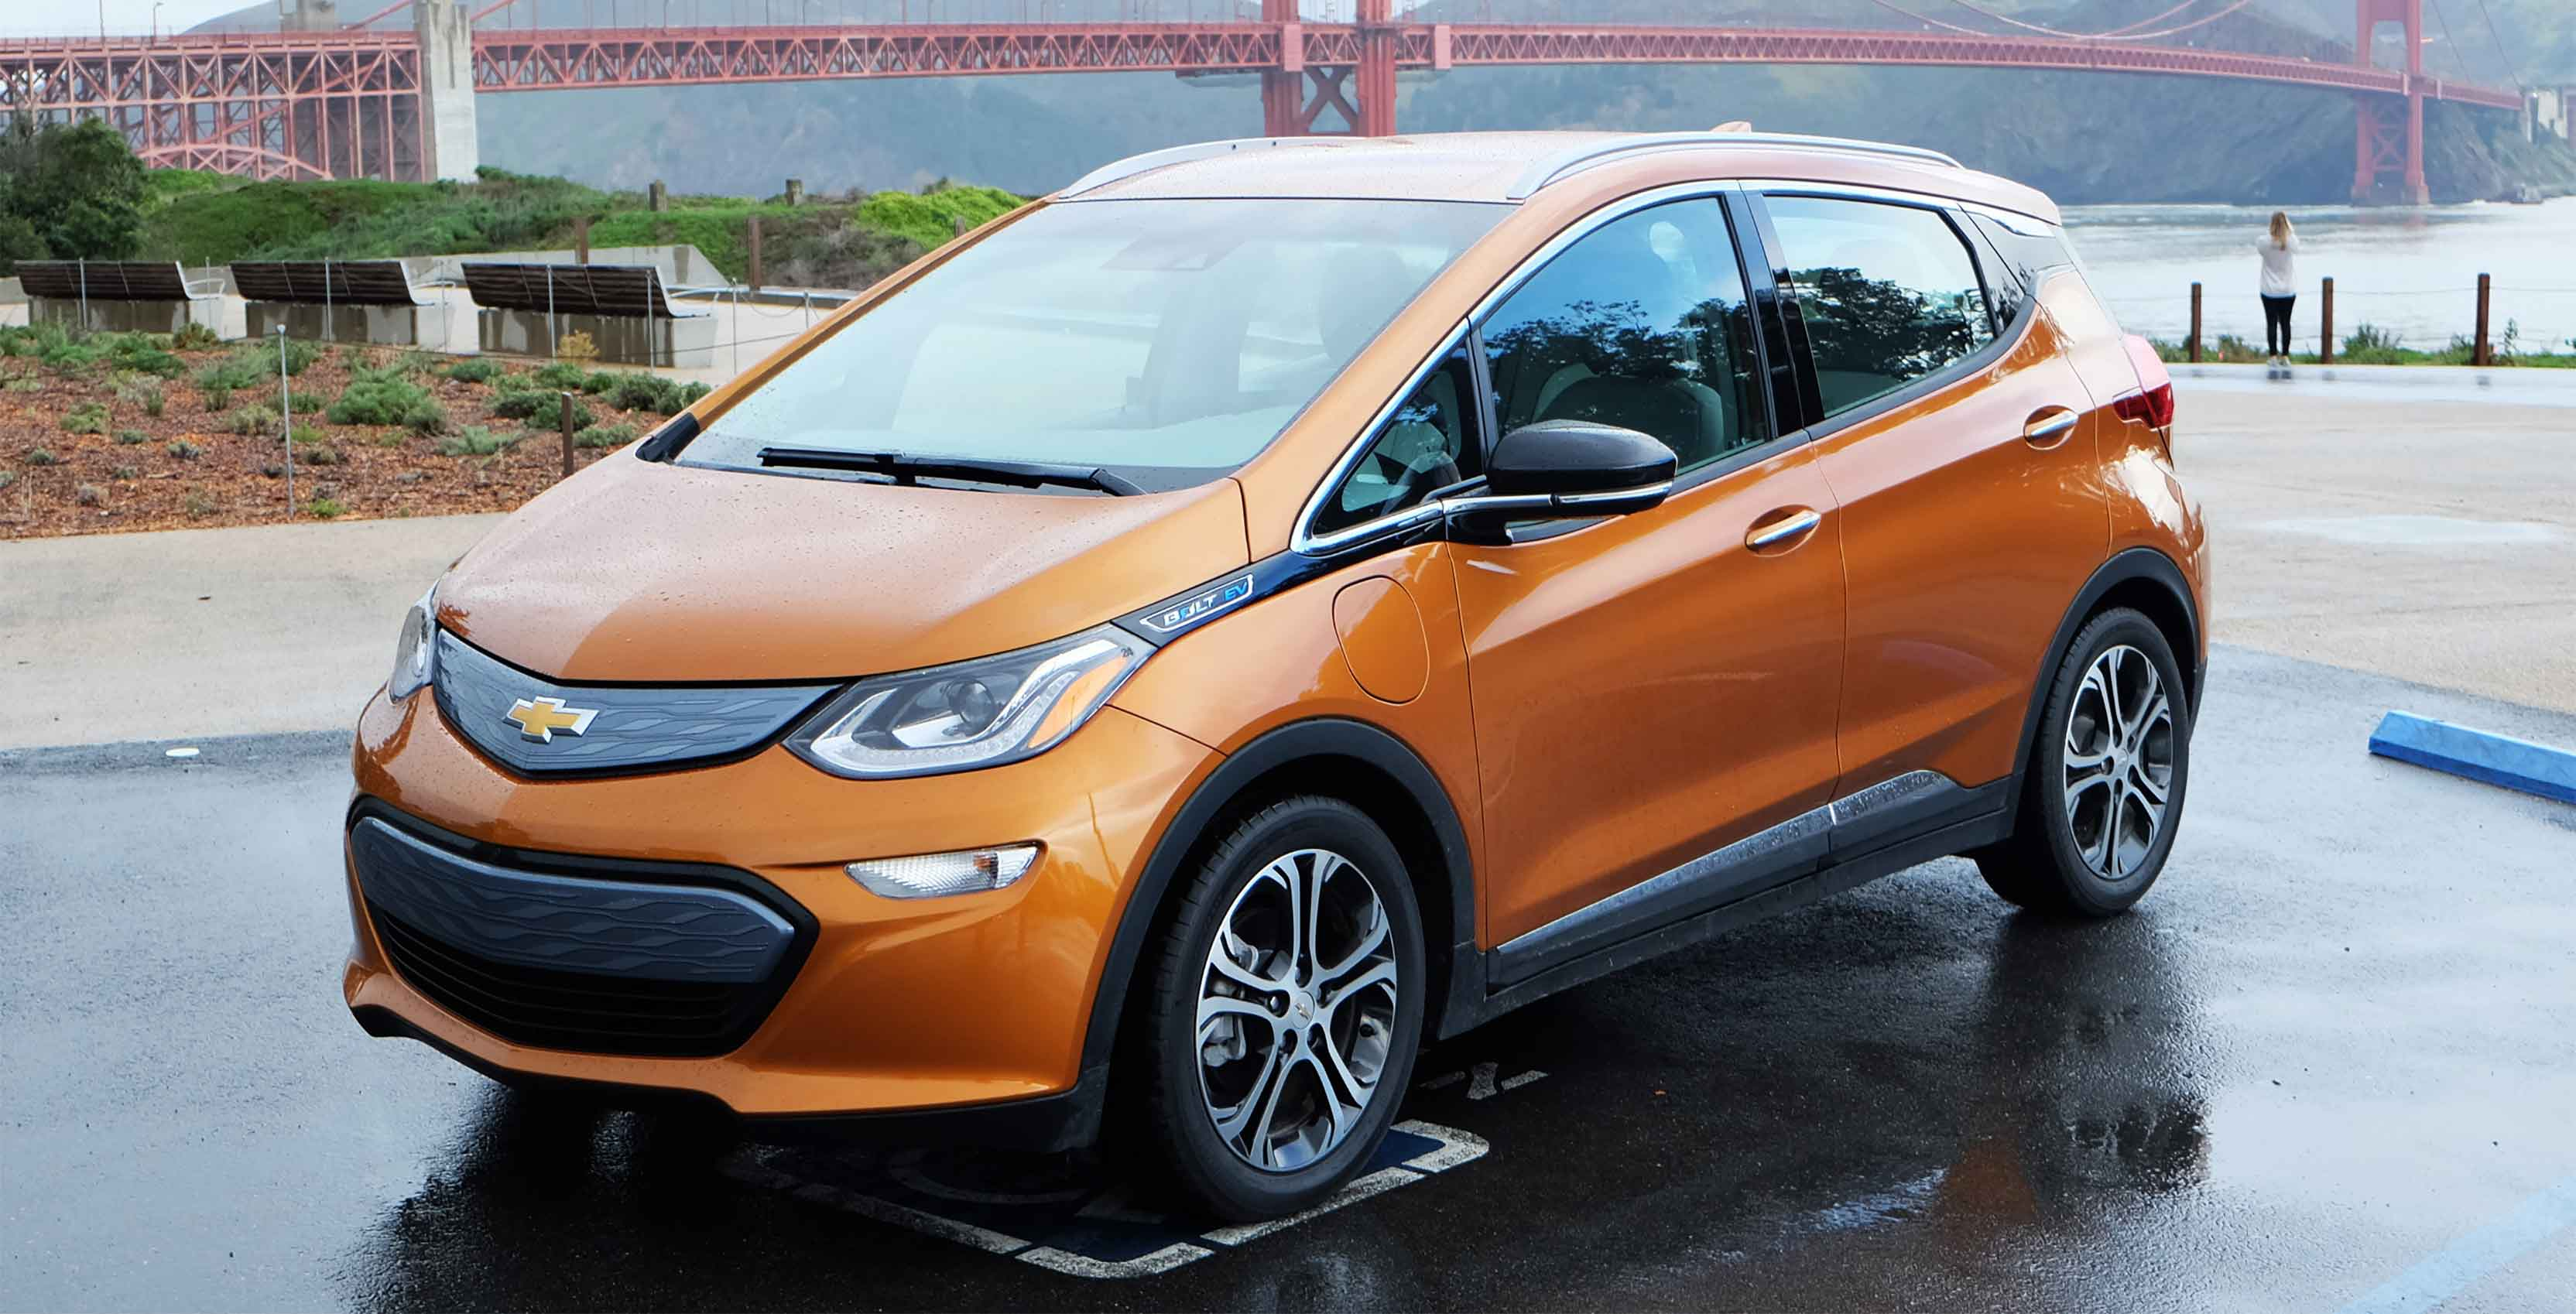 Chevy Bolt used as base for the AutoDrive Challenge